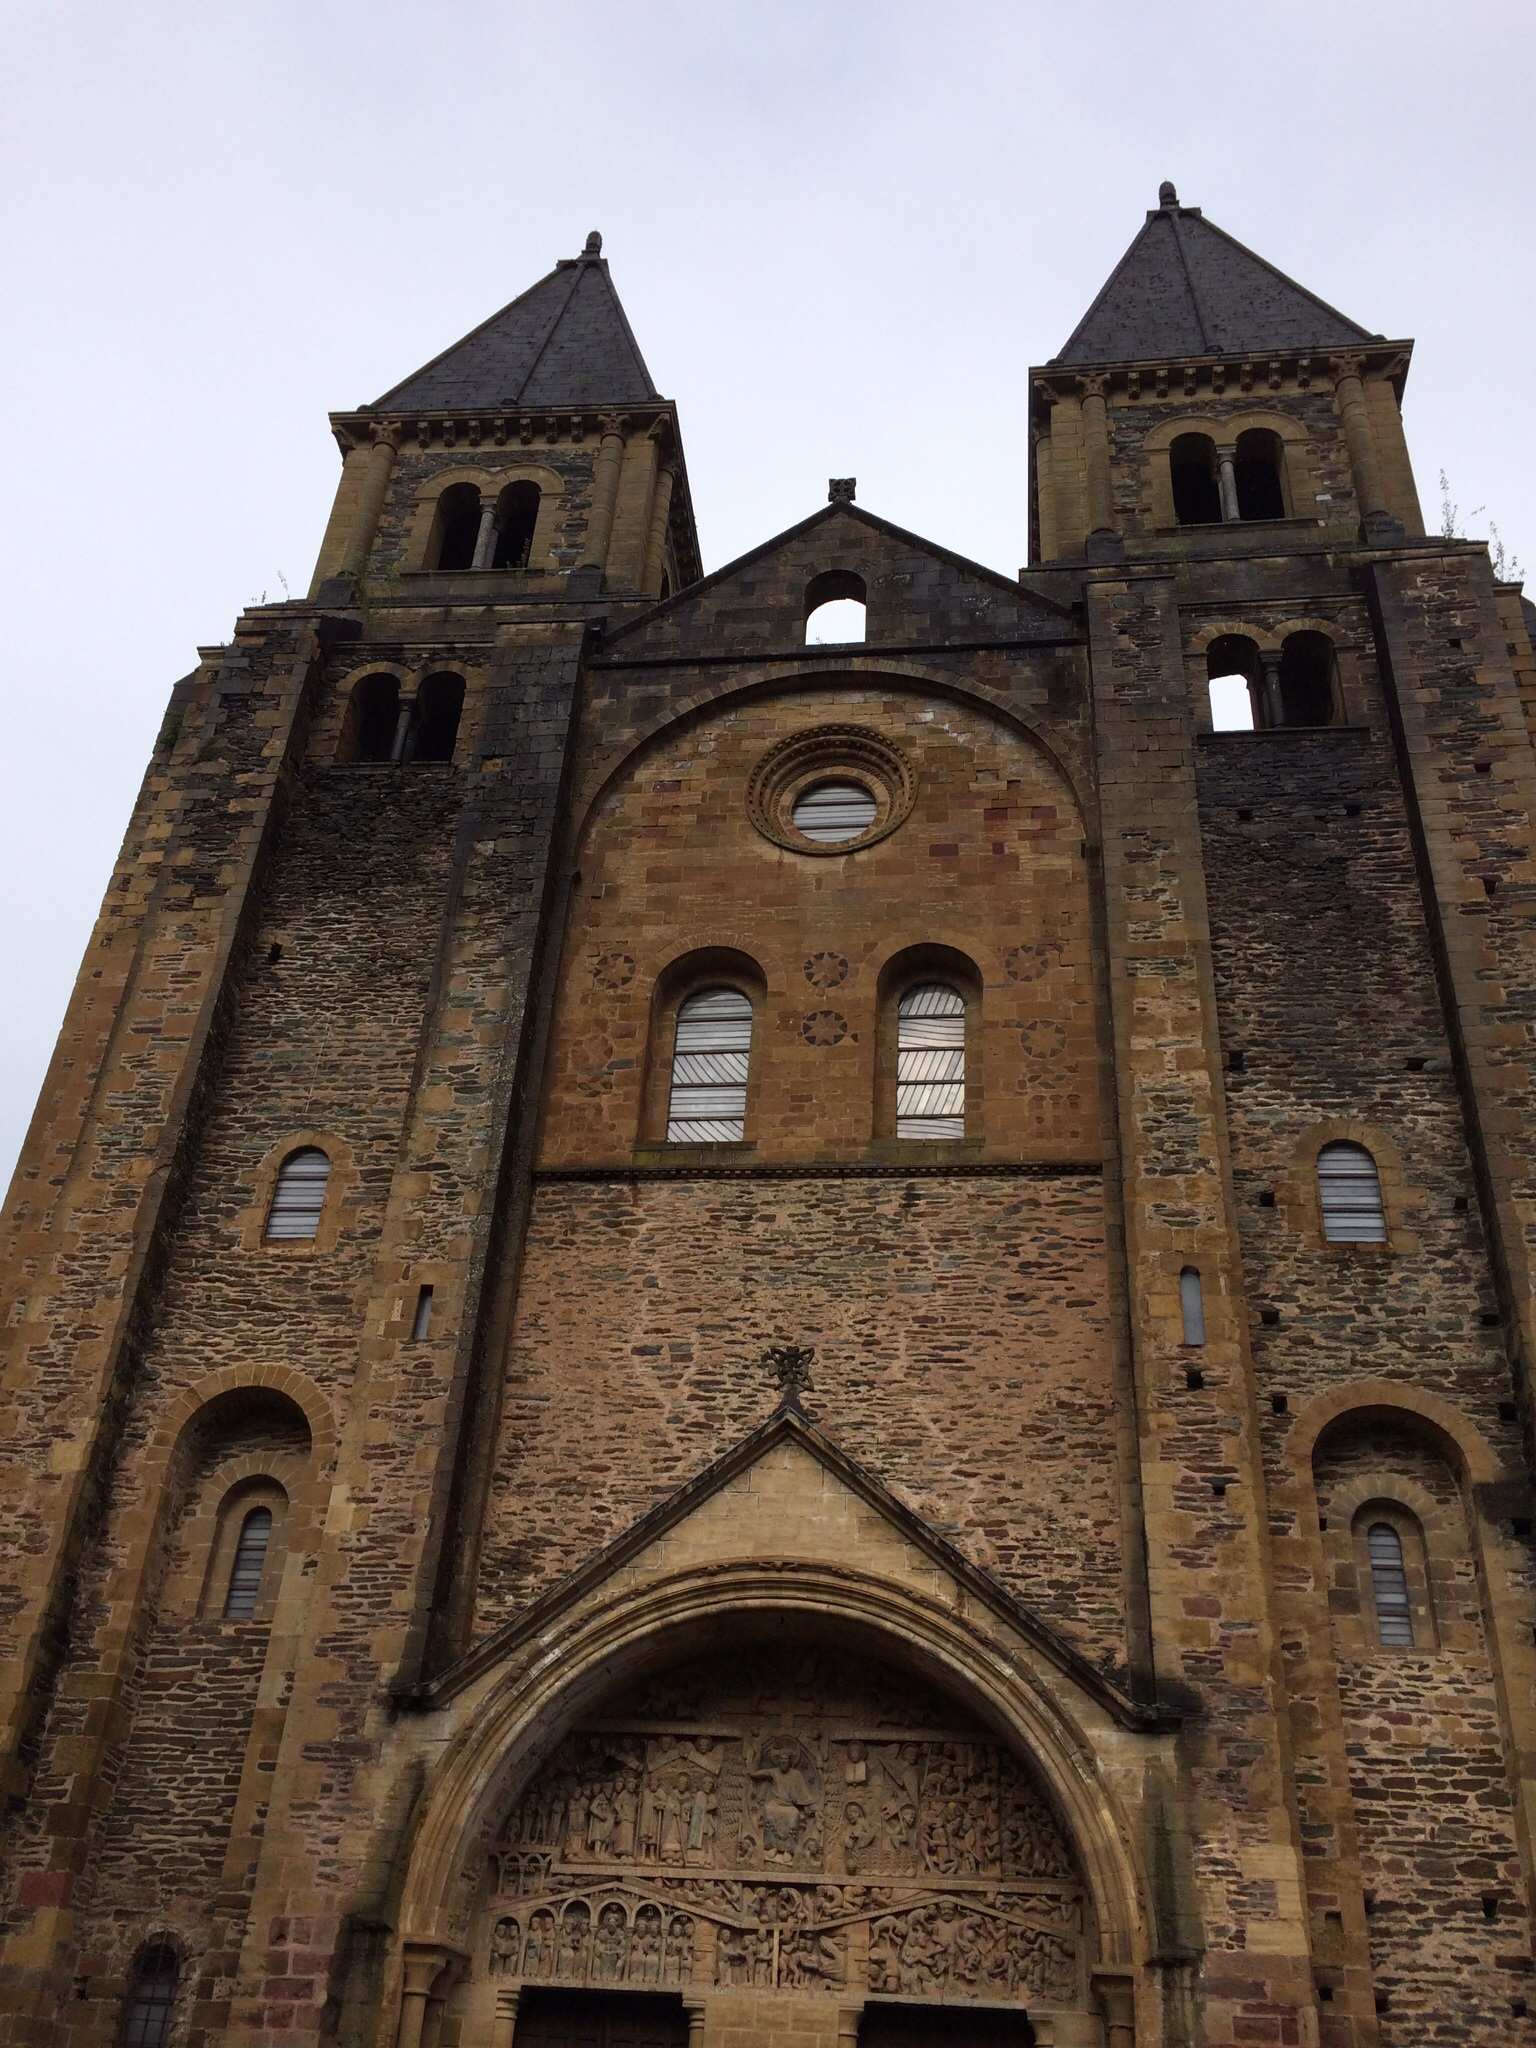 This is the Eglise de Perse where pilgrims have stopped for centuries.